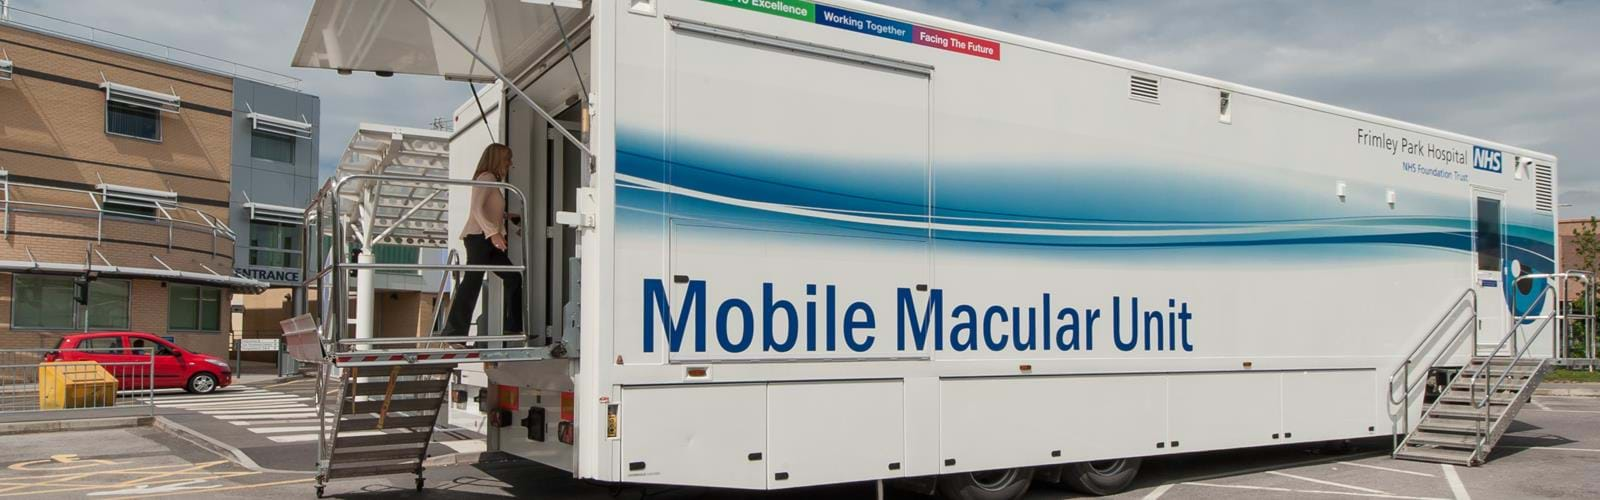 Mobile Ophthalmology Unit Frimley Park Hospital (5)